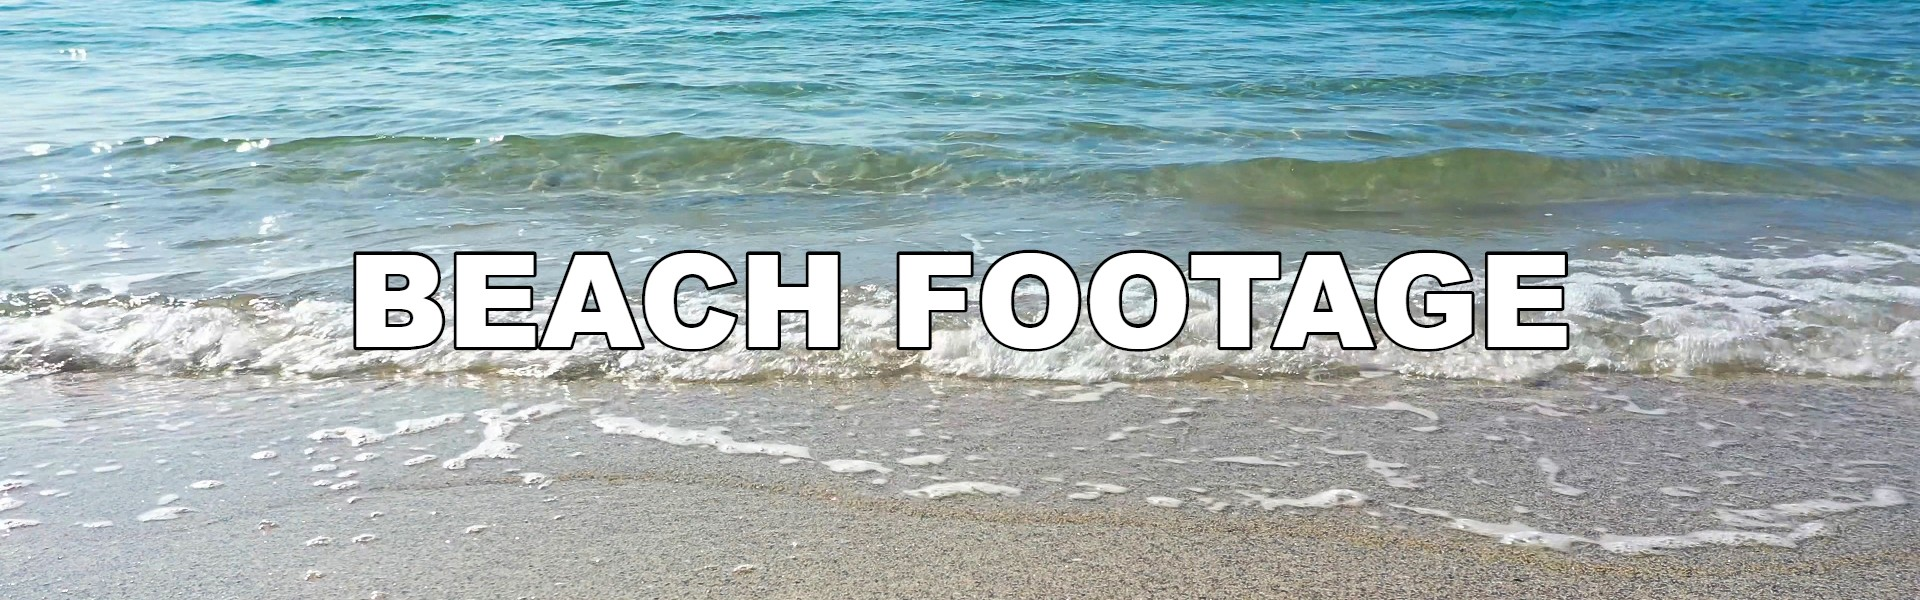 Free beach stock footage